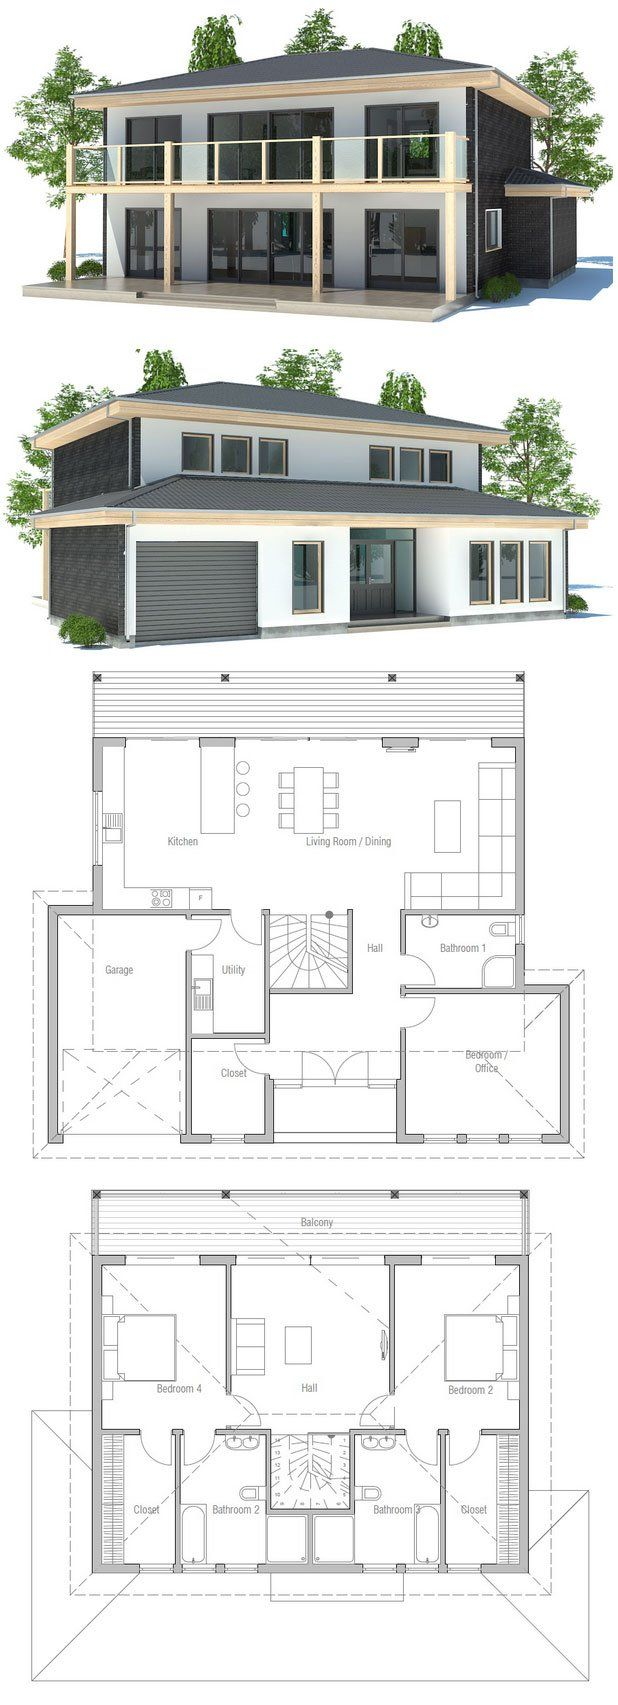 Small Bathroom Floor Plans Autocad: 52 Best Images About Grundrisse On Pinterest